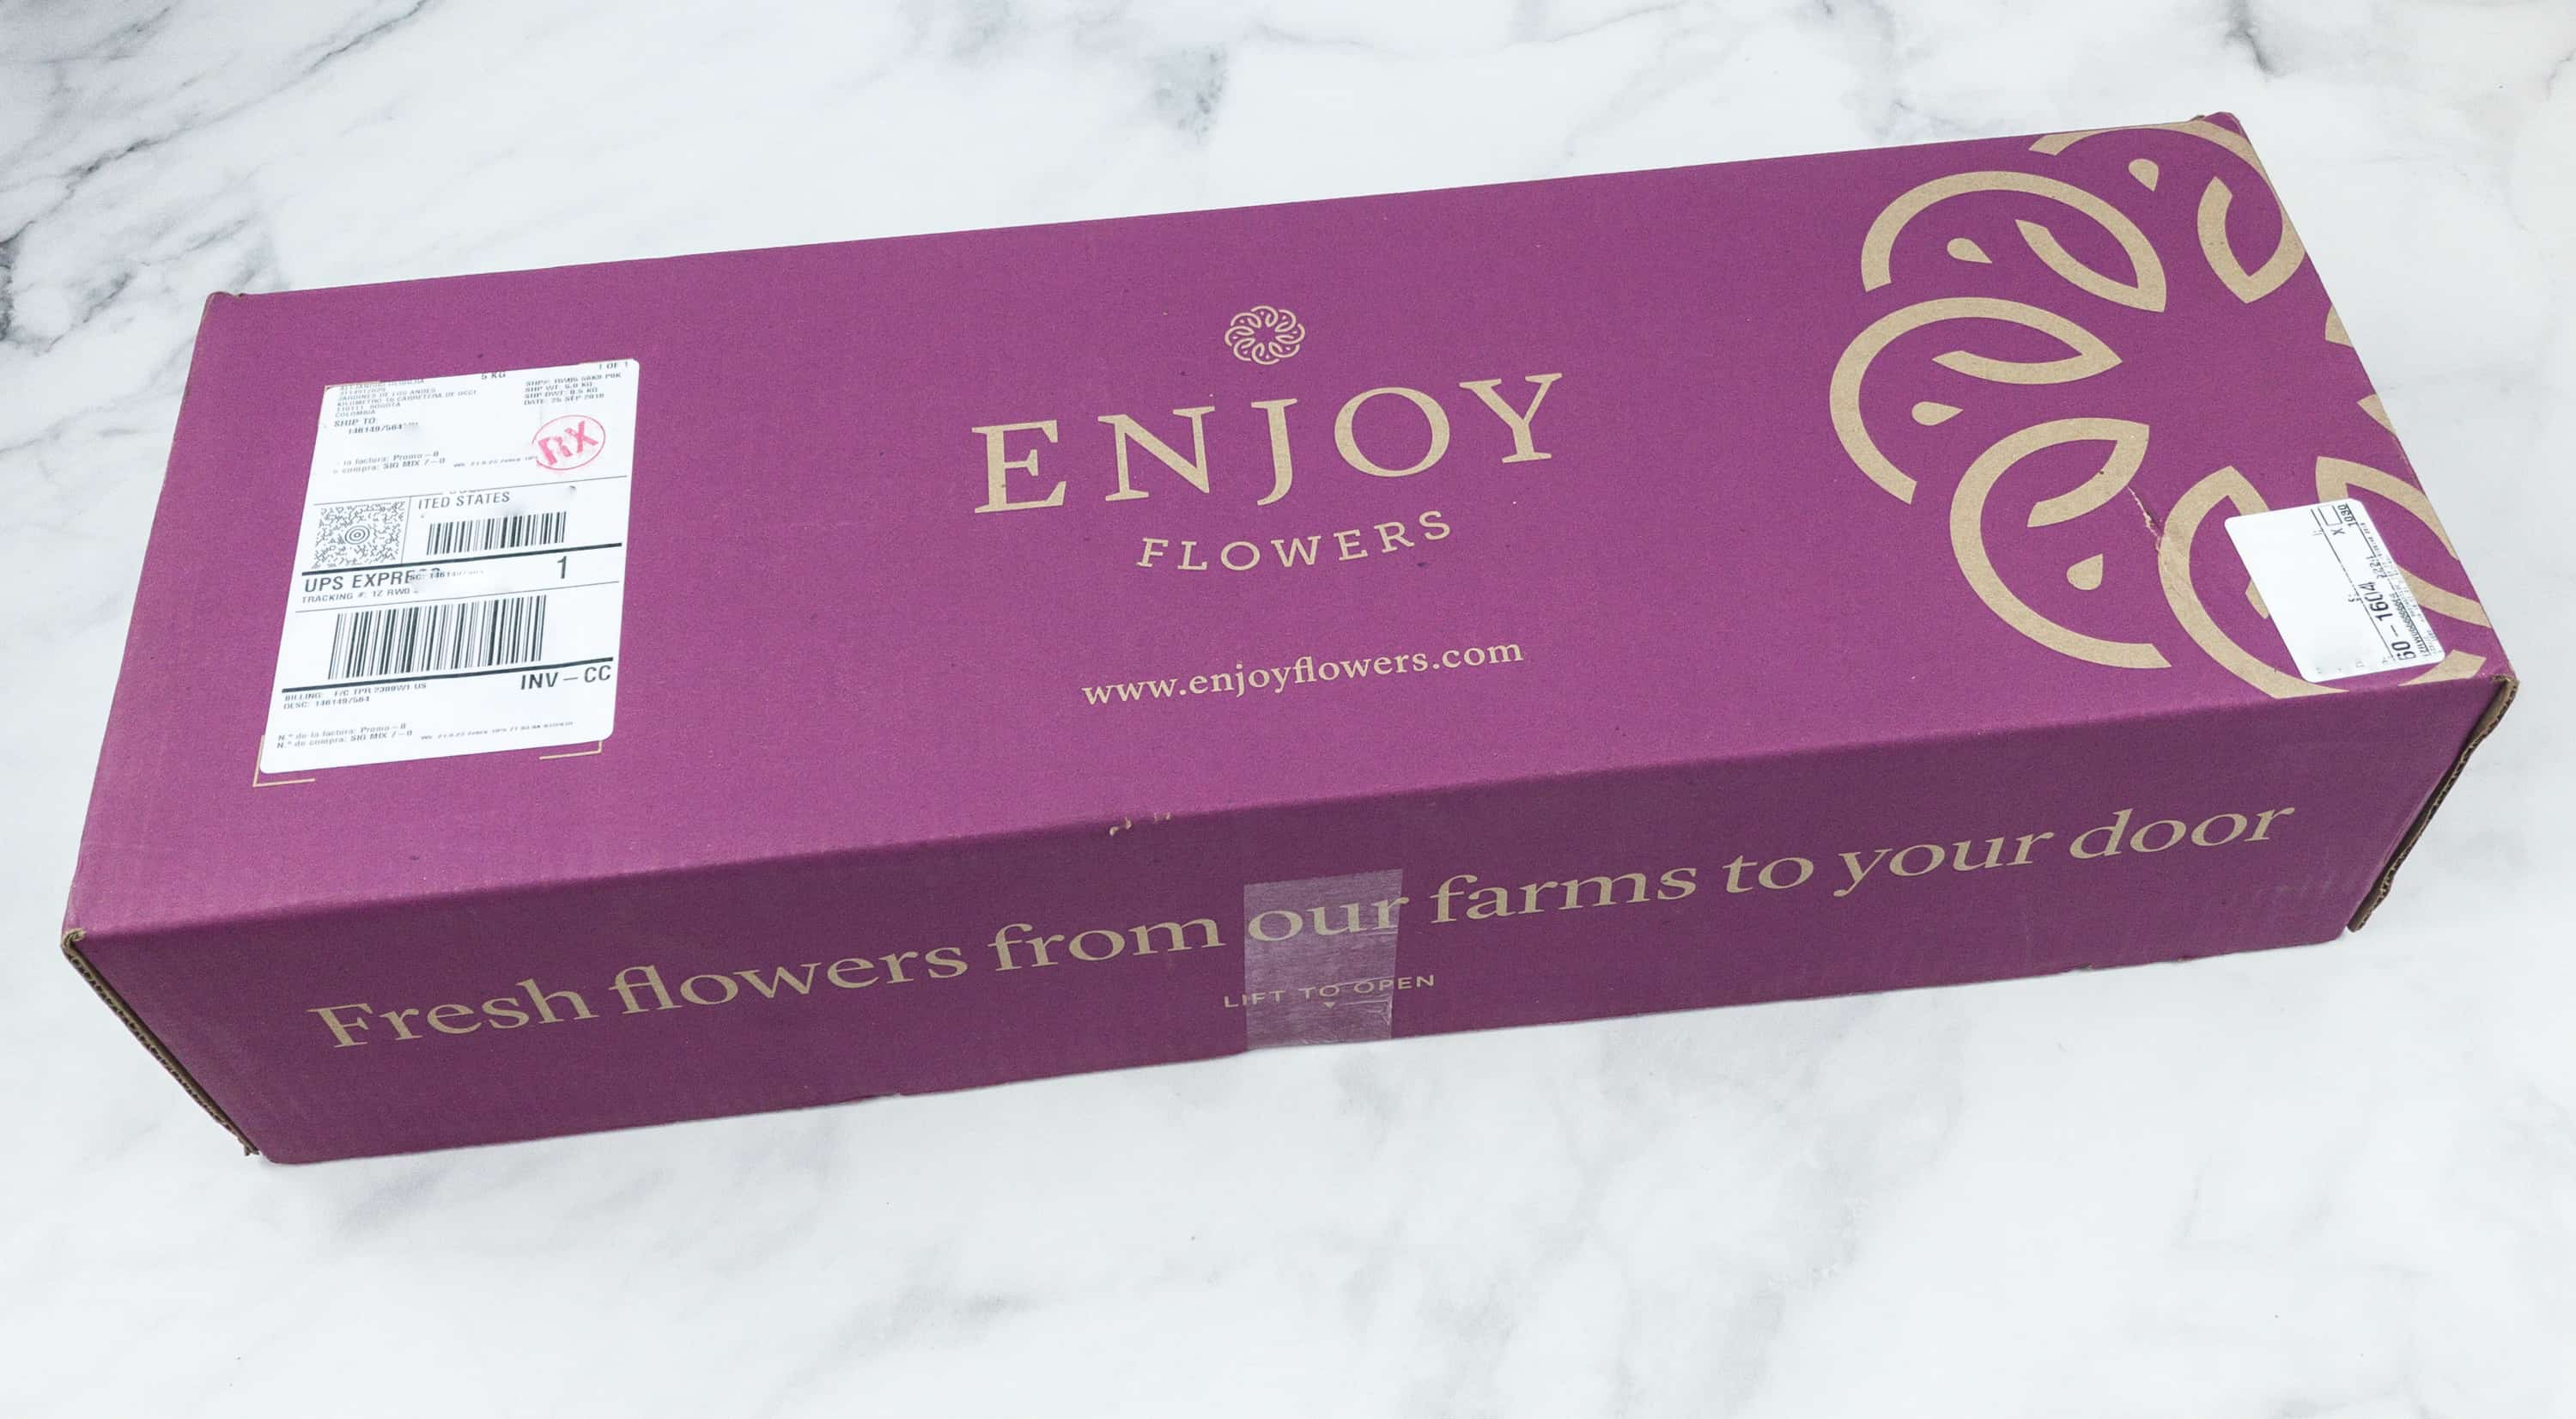 Enjoy flowers october 2018 subscription box review 50 off coupon enjoy flowers is a flower subscription service that brings long lasting fresh flowers once or twice a month bouquet prices start at 3825 per delivery and izmirmasajfo